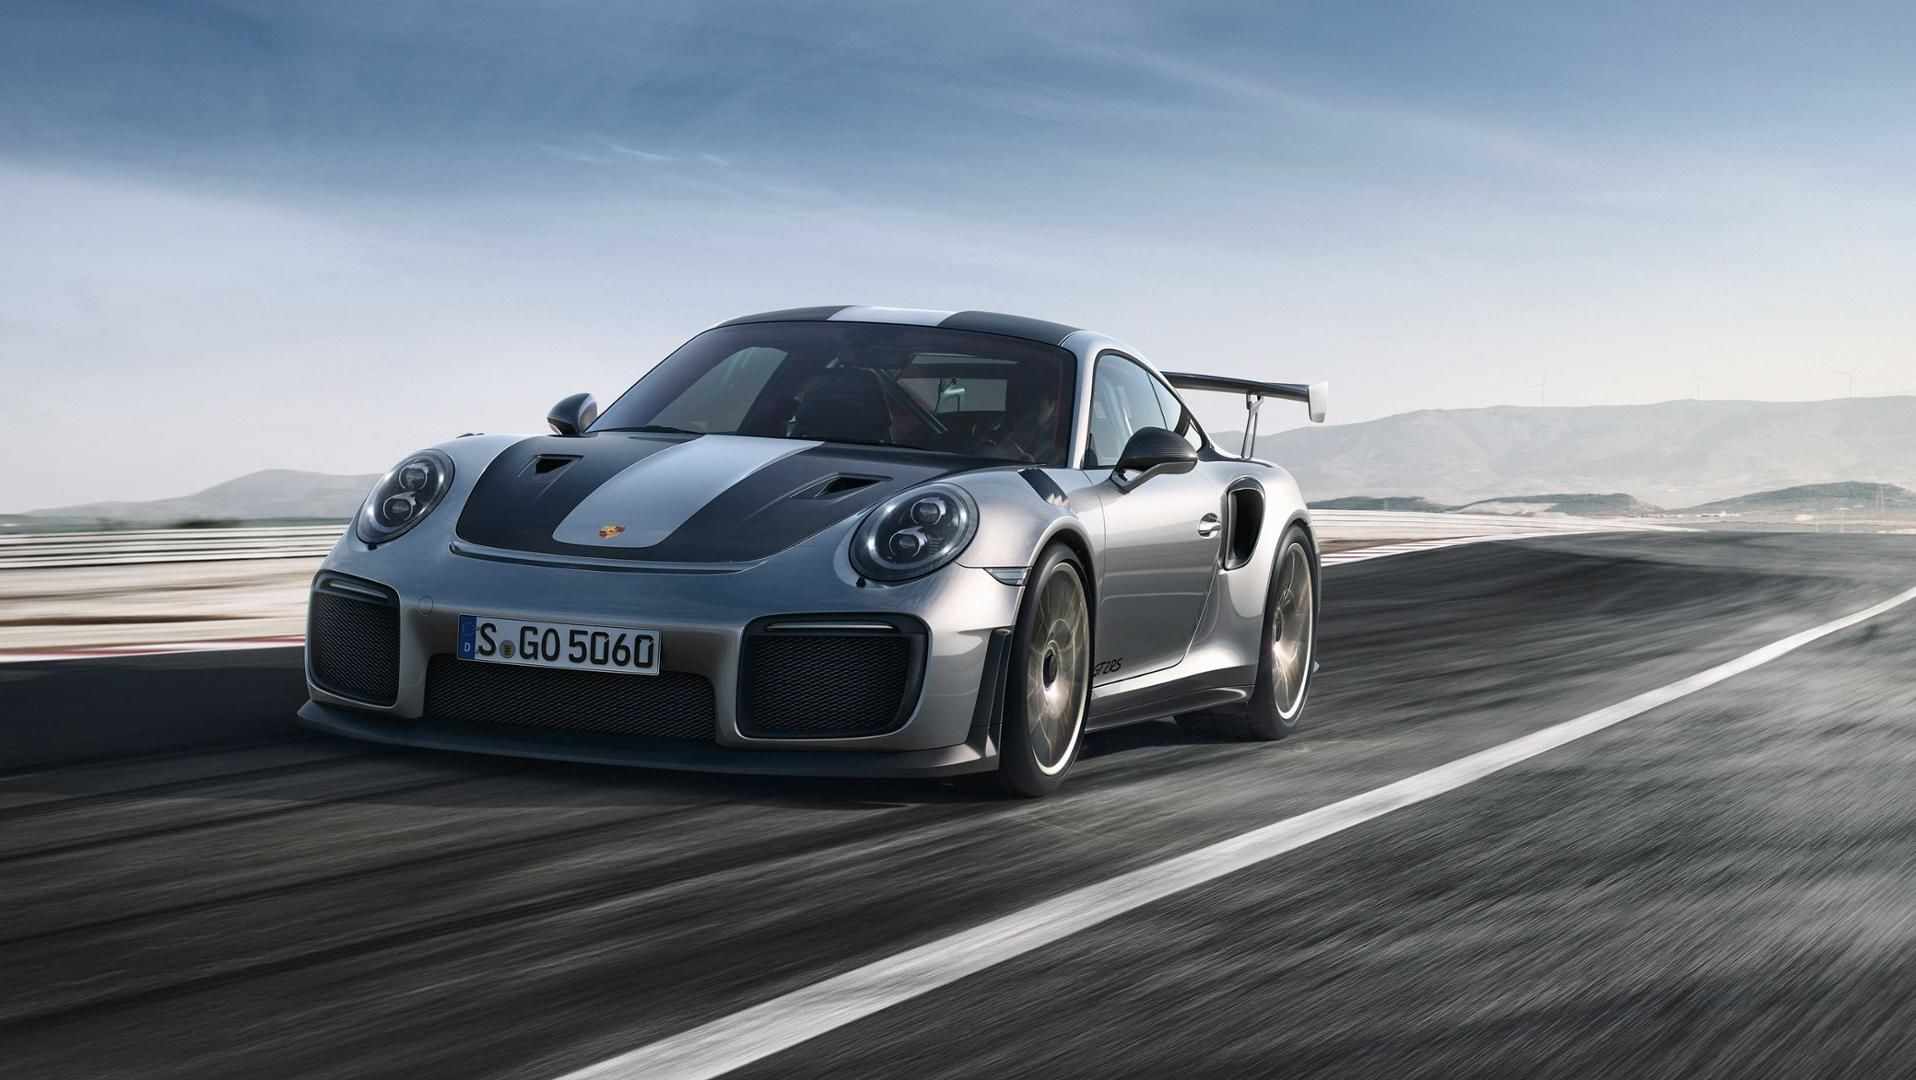 Porsche 911 GT2 RS is a street-legal 700-hp animal